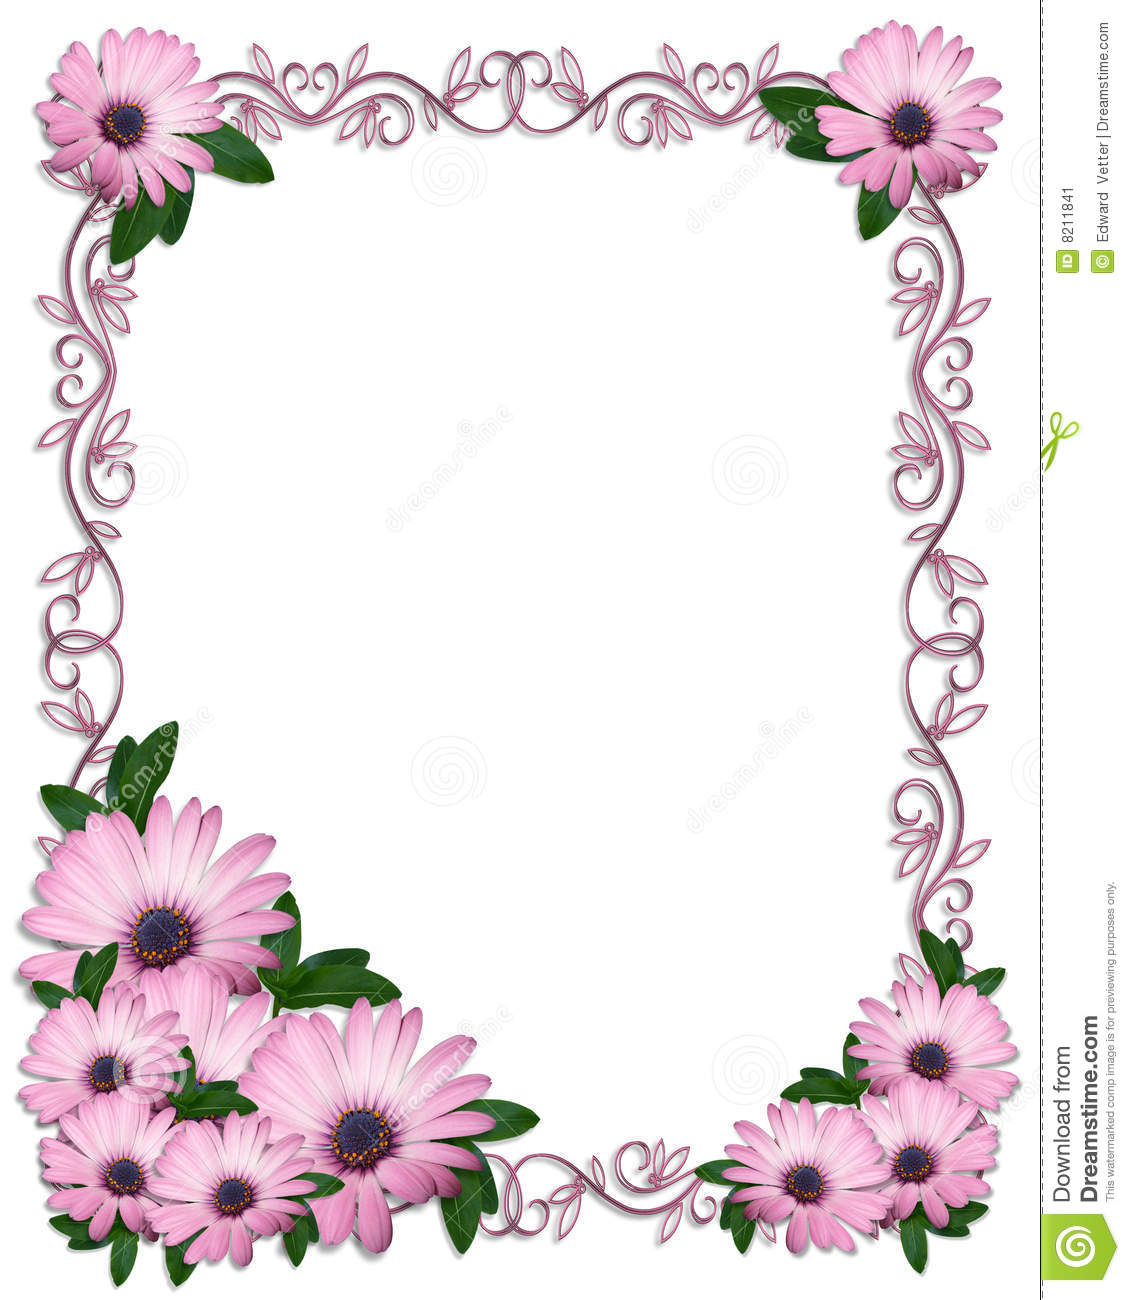 Floral Border Purple Daisies Stock Image - Image: 8211841